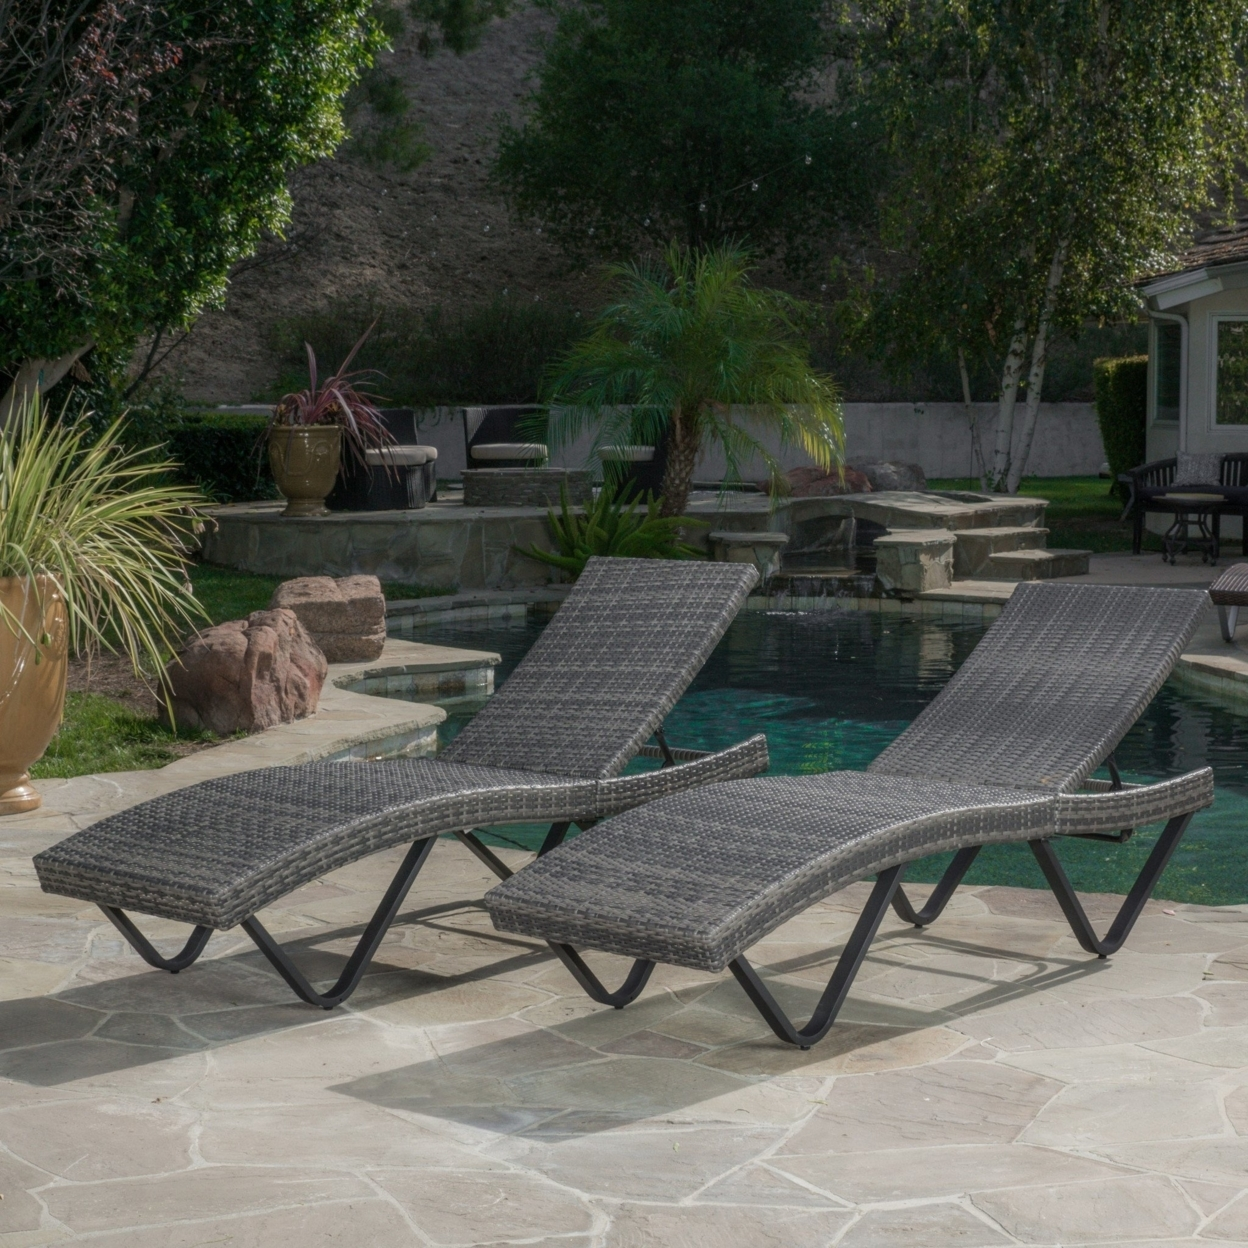 Zanna Outdoor Wicker Chaise Lounge (set of 2)